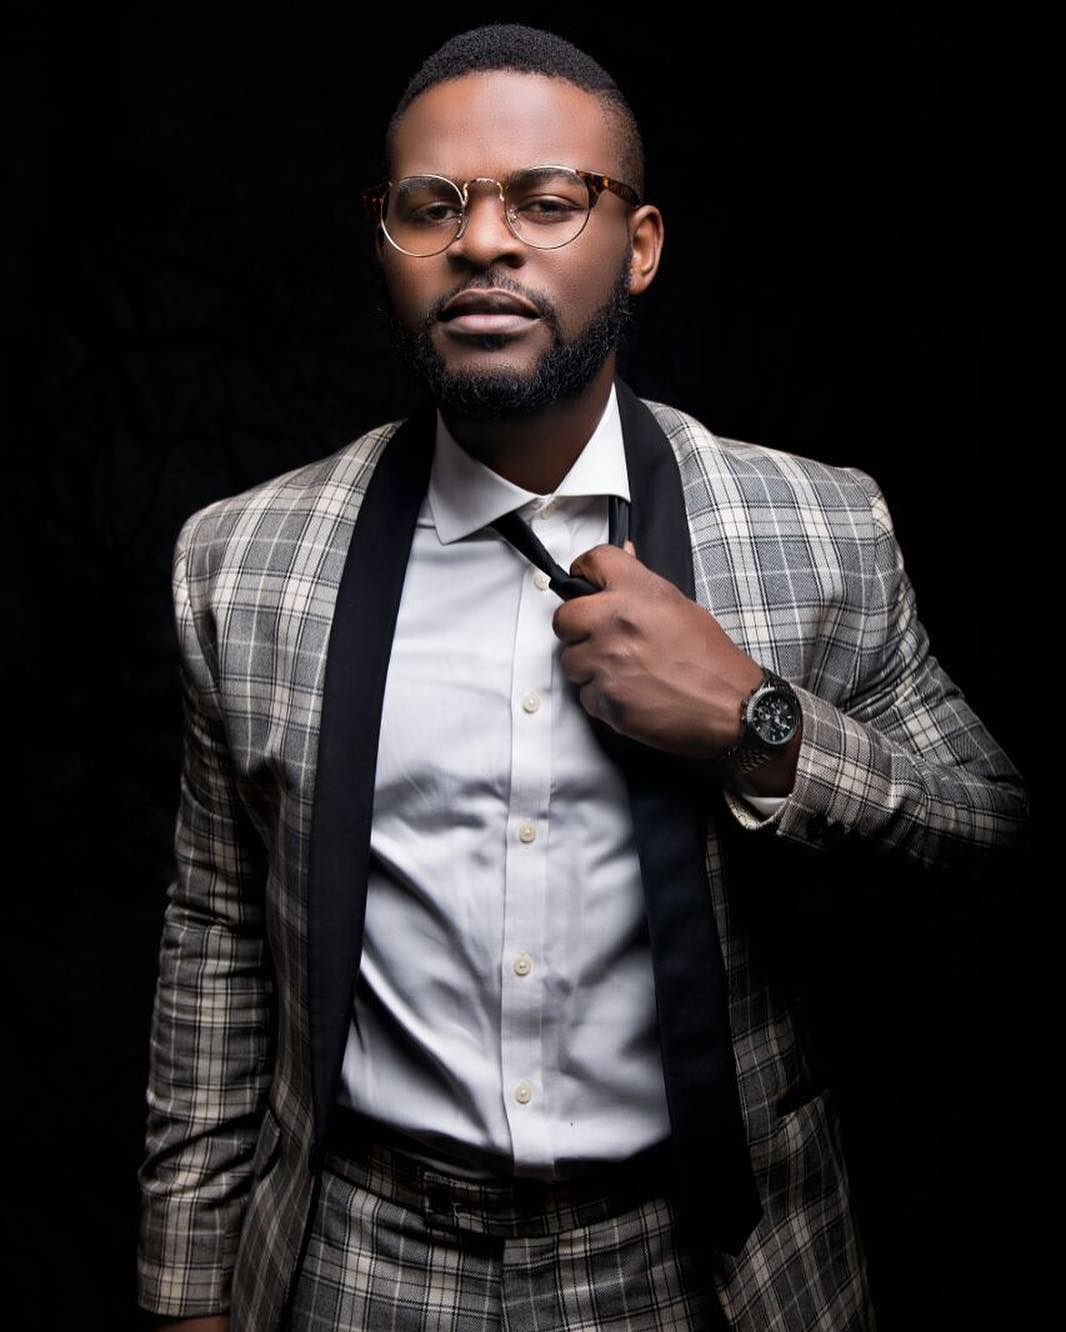 Falz the bahd guy 1